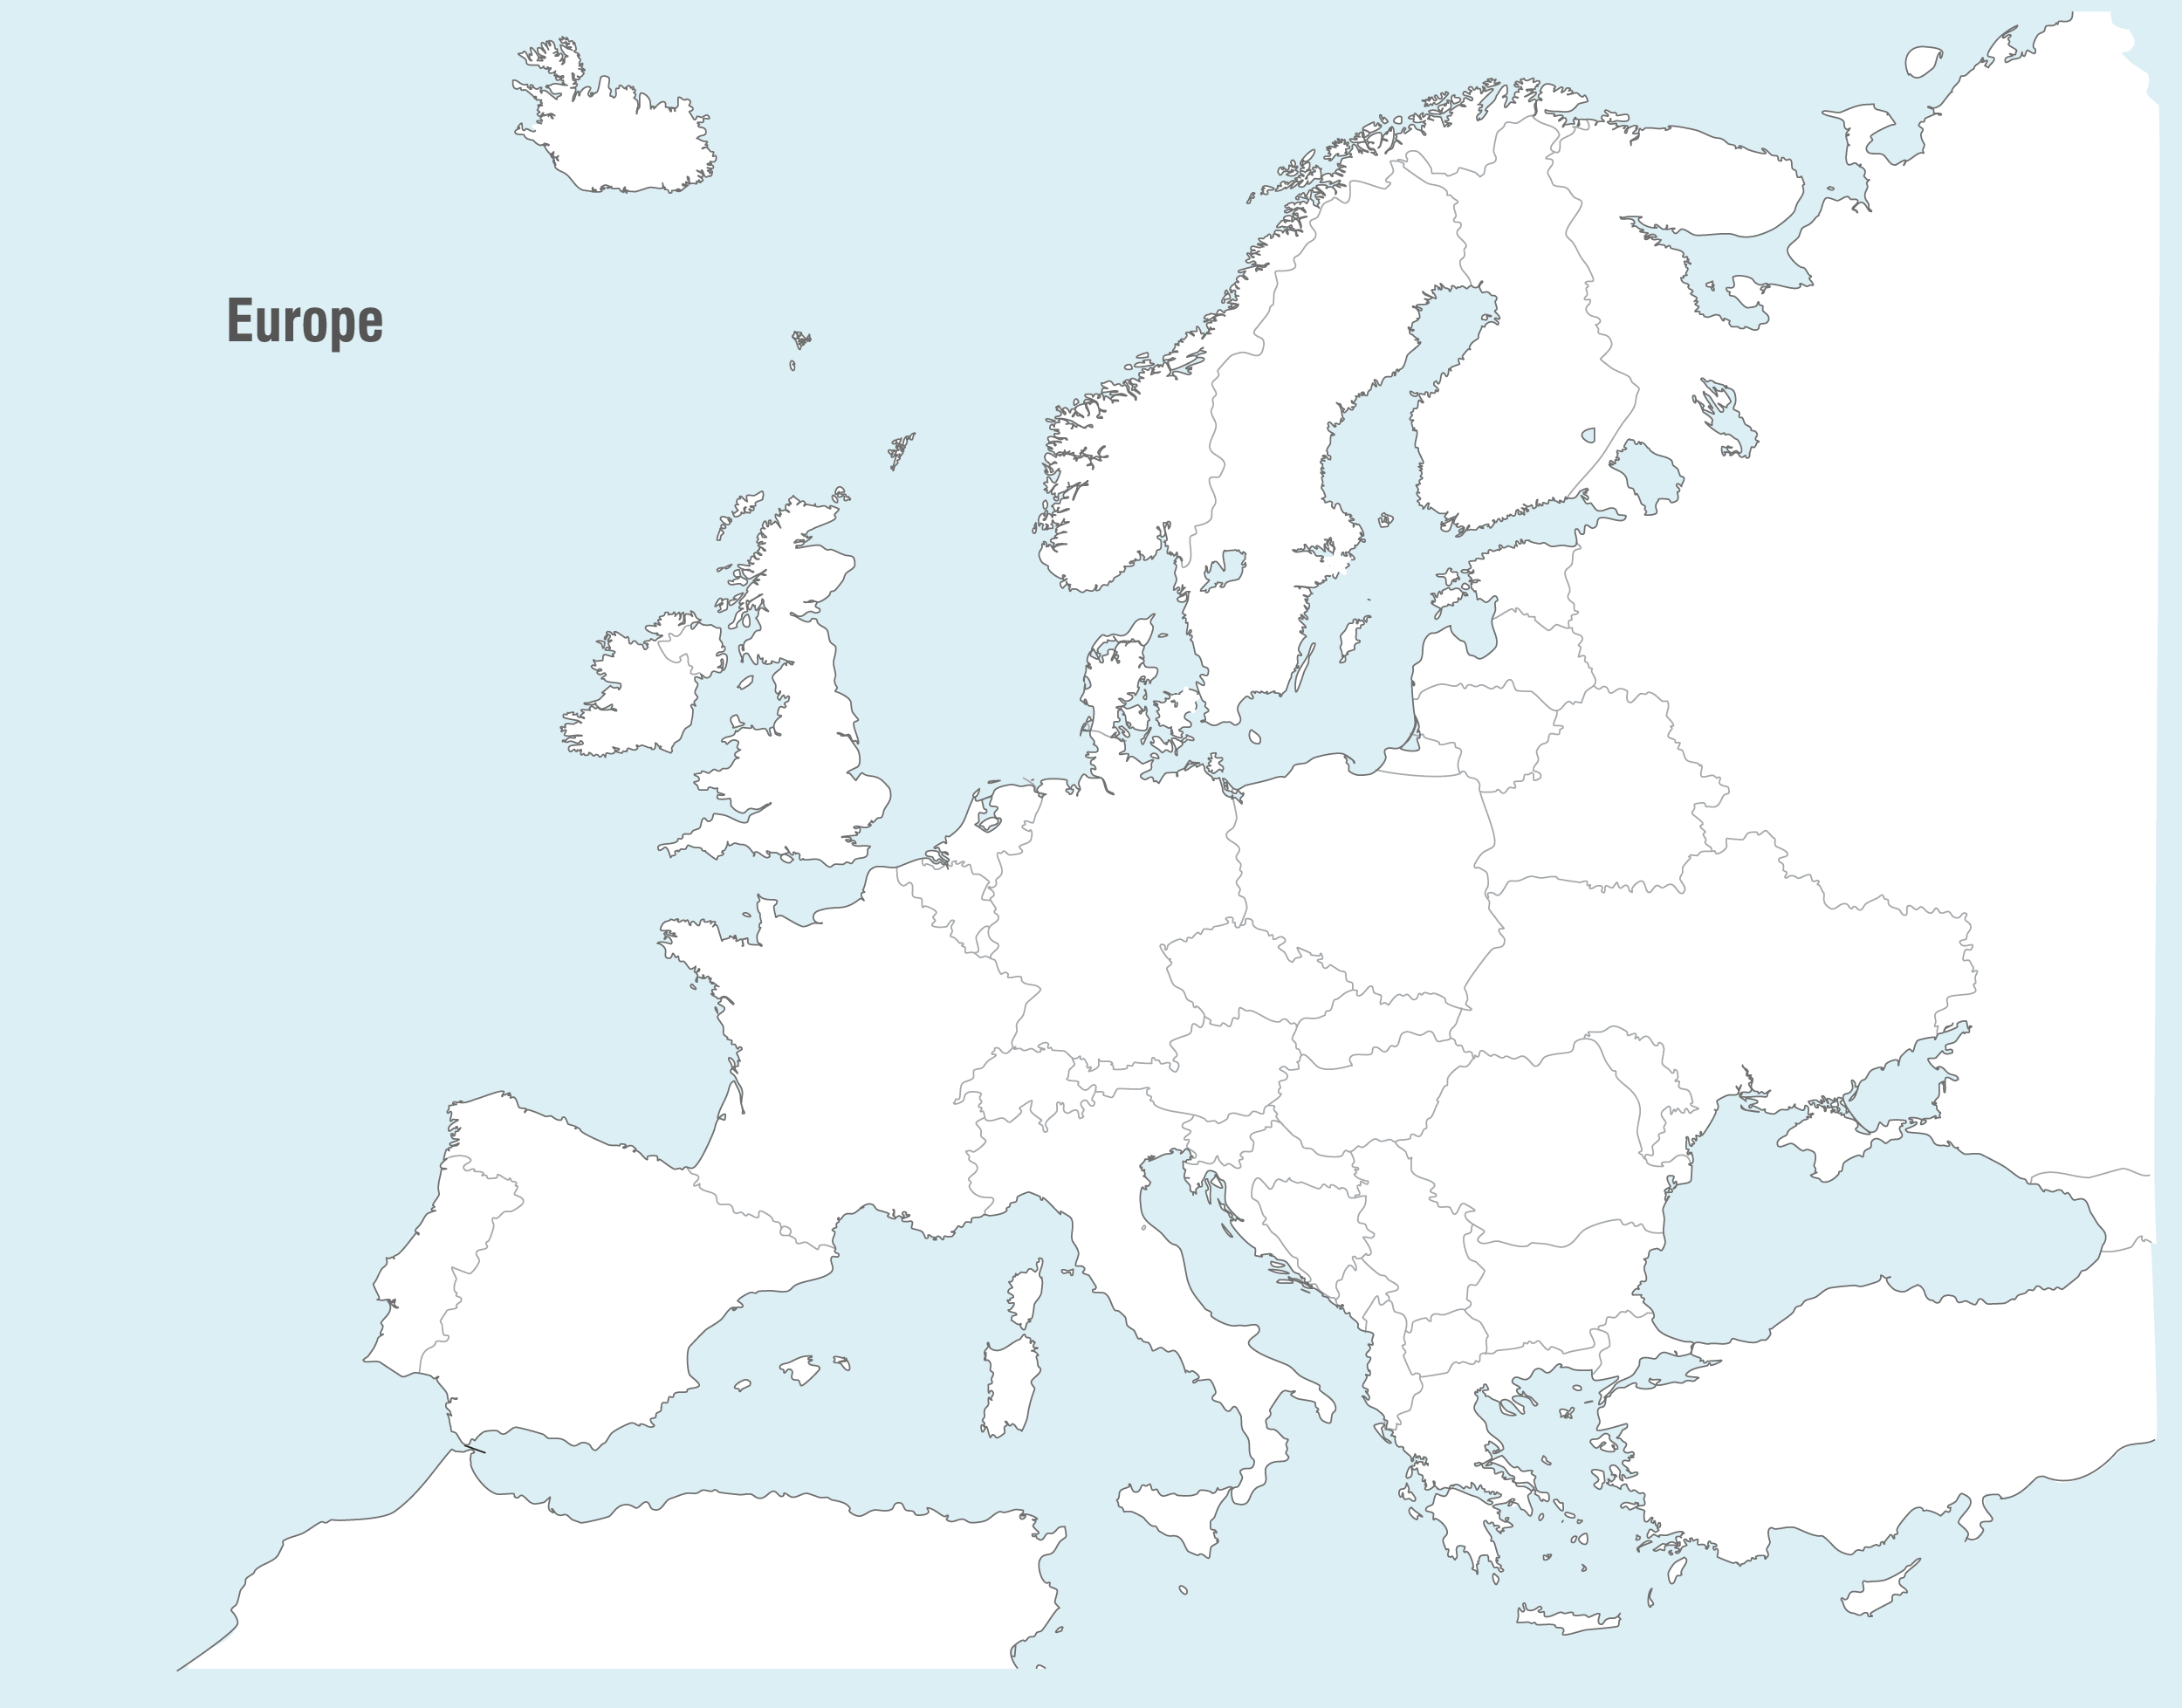 Europe Countries Map Blank • Mapsof.net